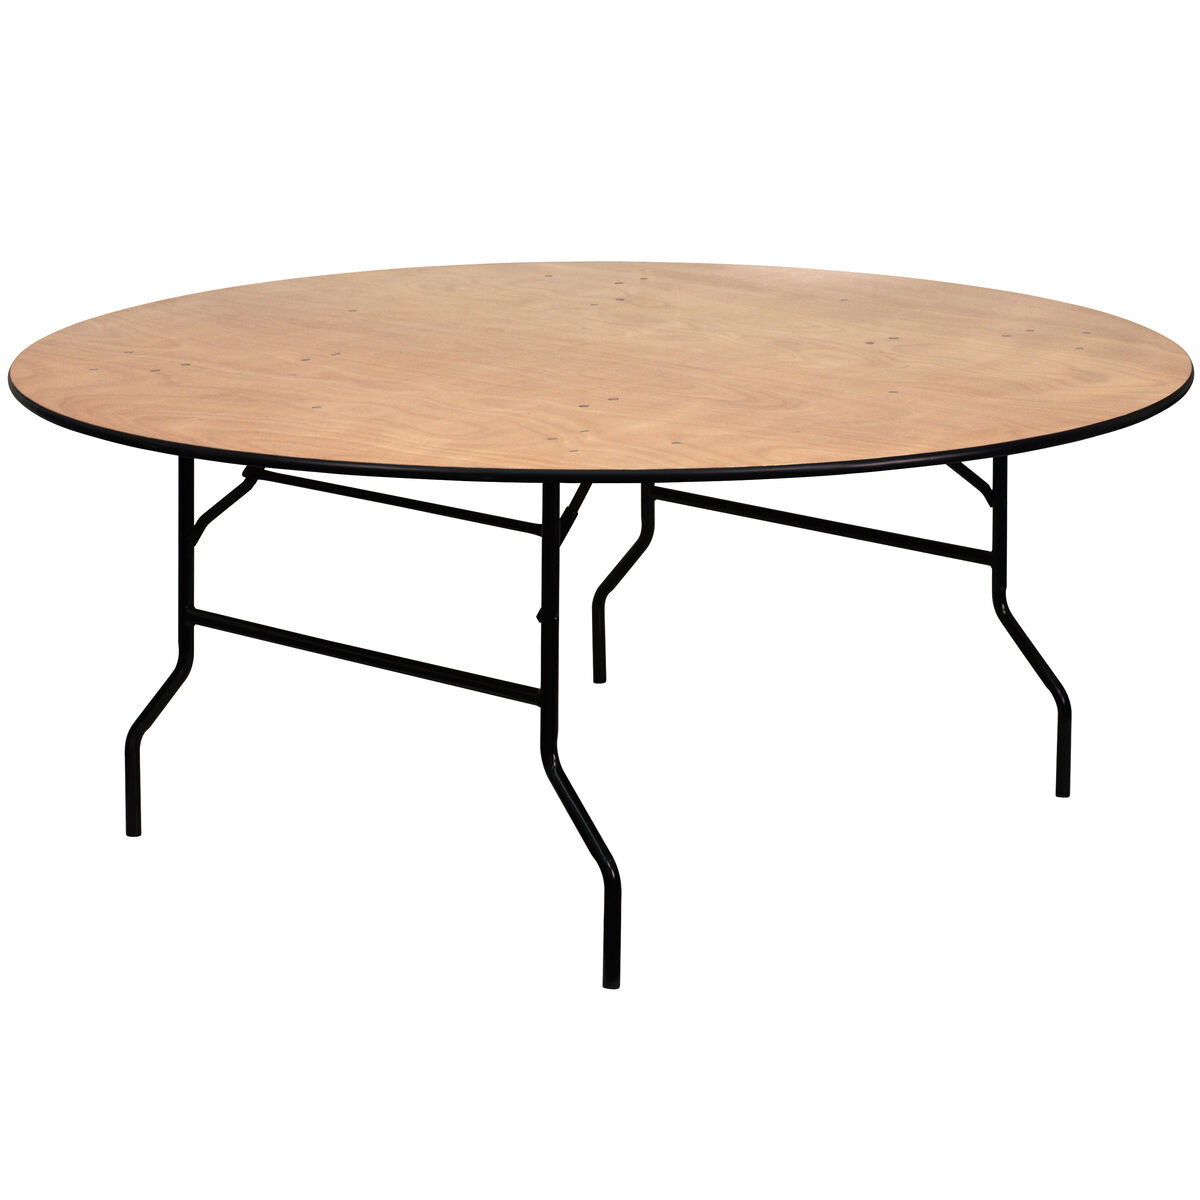 Round Table Seating Capacity 72rnd Wood Fold Table Yt Wrft72 Tbl Gg